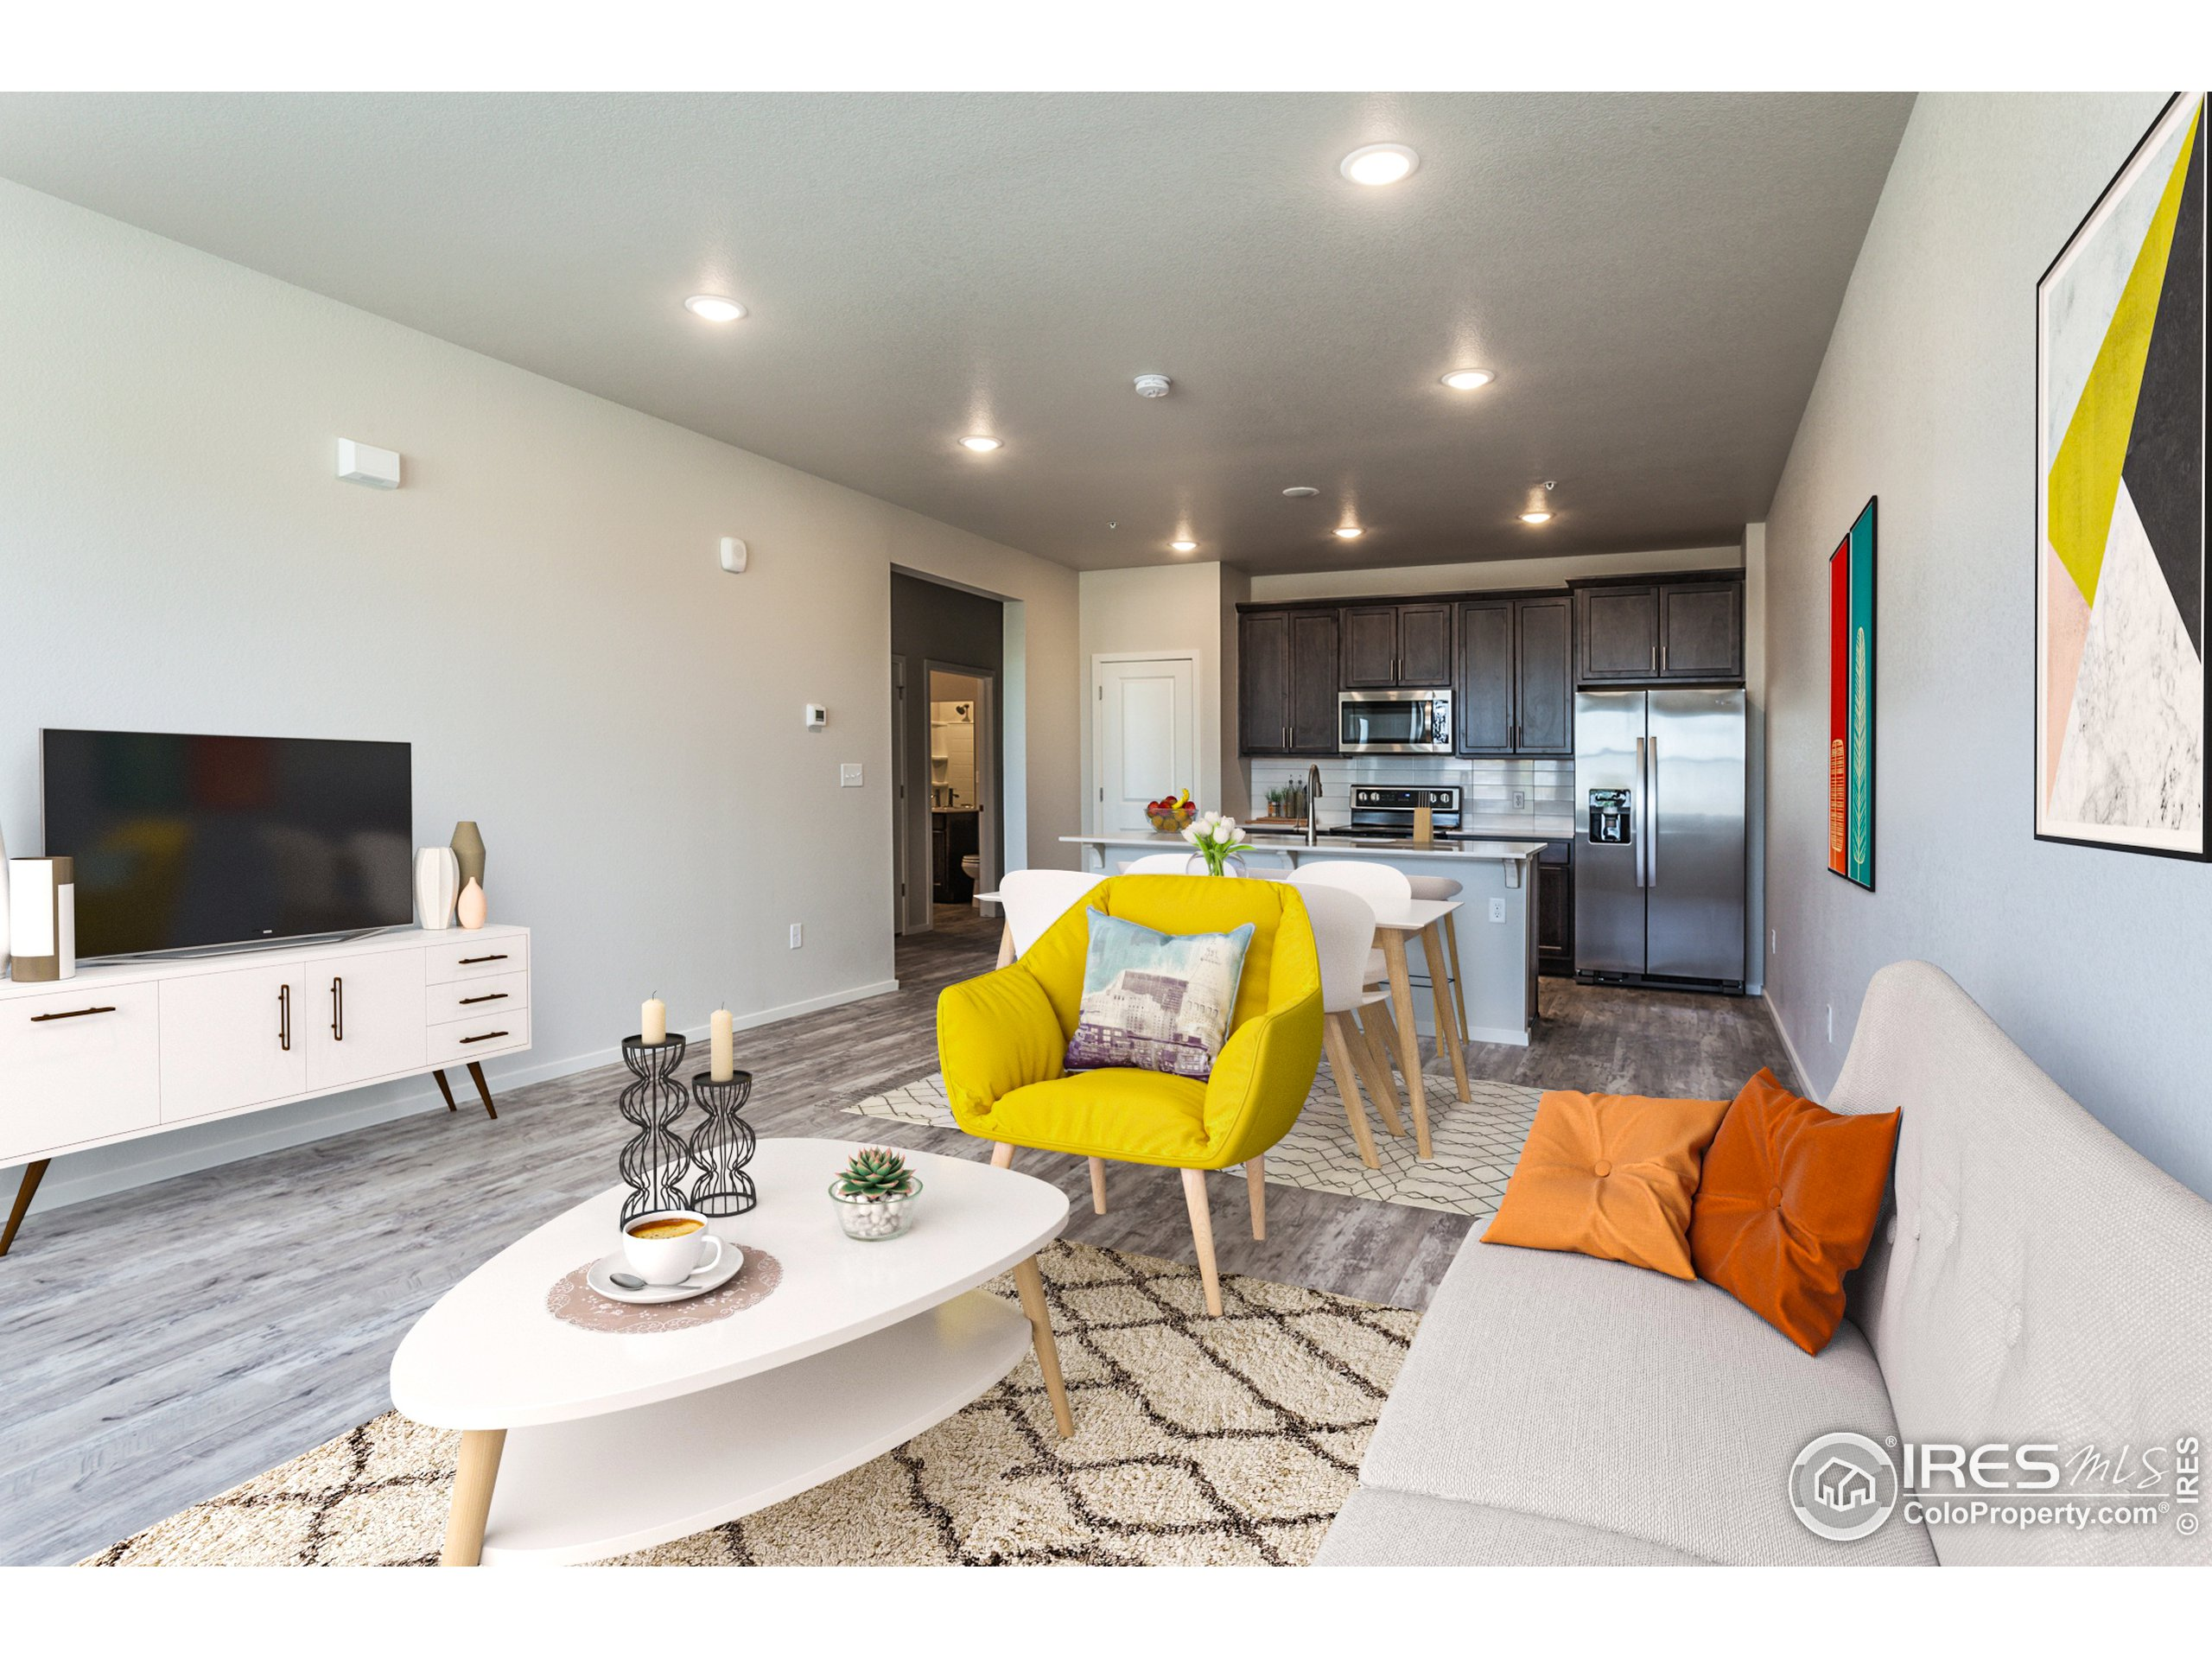 EXAMPLE PHOTOS: LIVING ROOM, DINING ROOM & KITCHEN